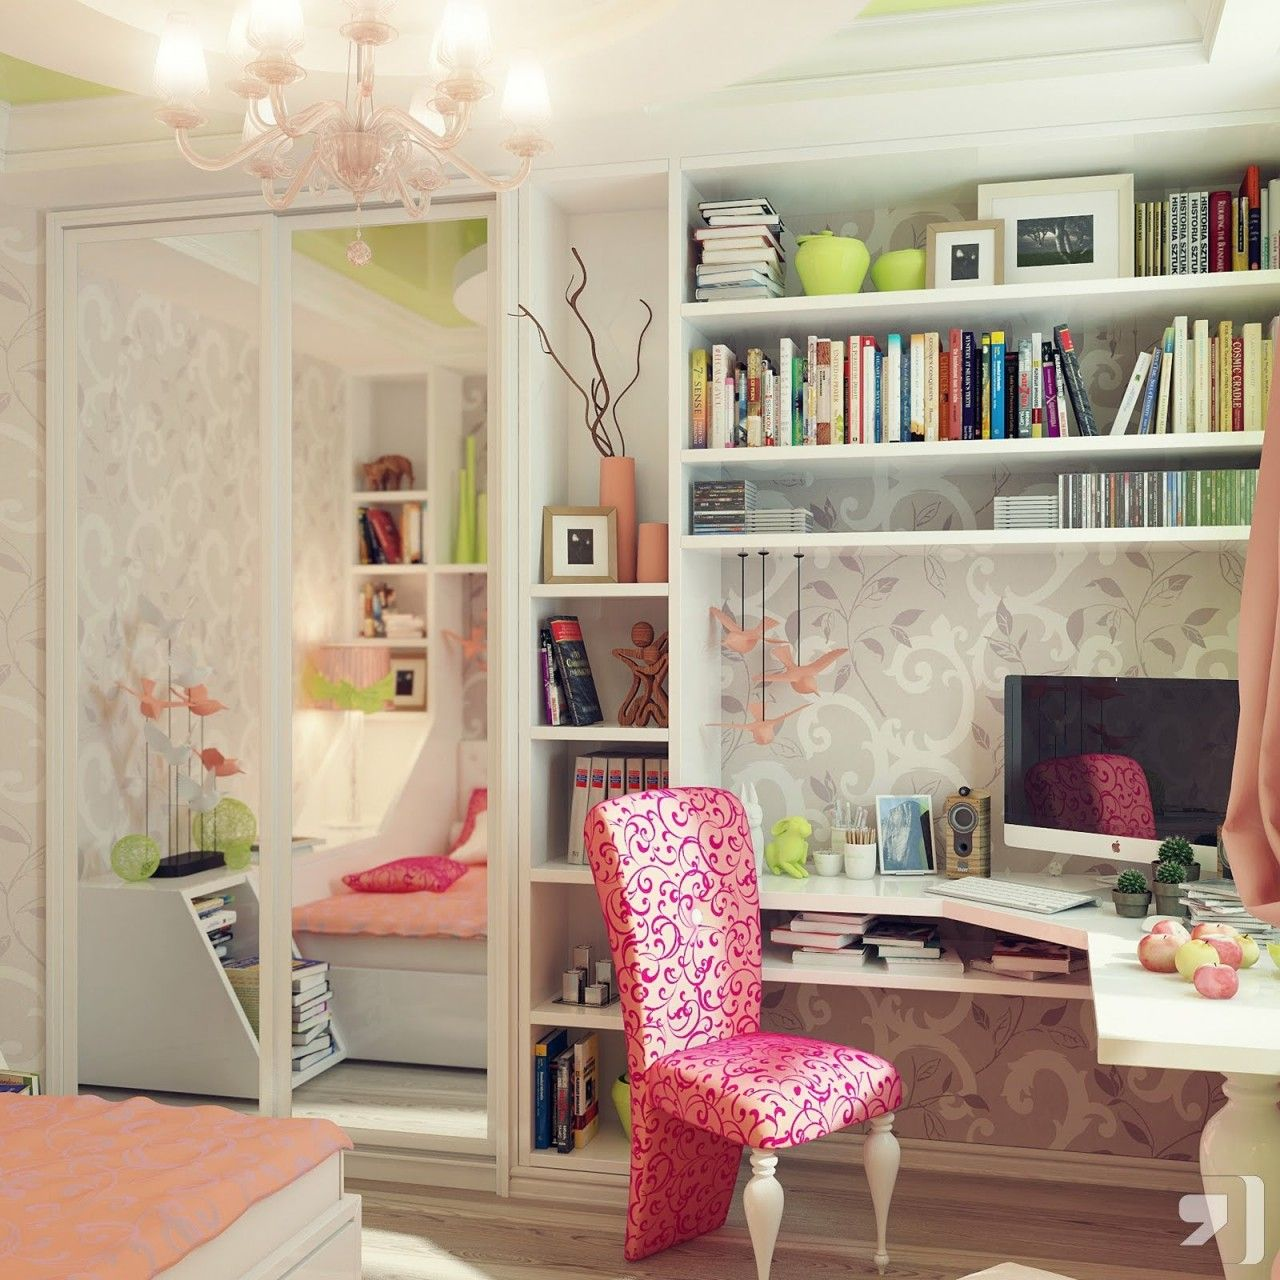 Bedroom  Awesome Storage Space With White Book Shelves And Cool Wardrobe In  White Small Girl. Bedroom  Awesome Storage Space With White Book Shelves And Cool